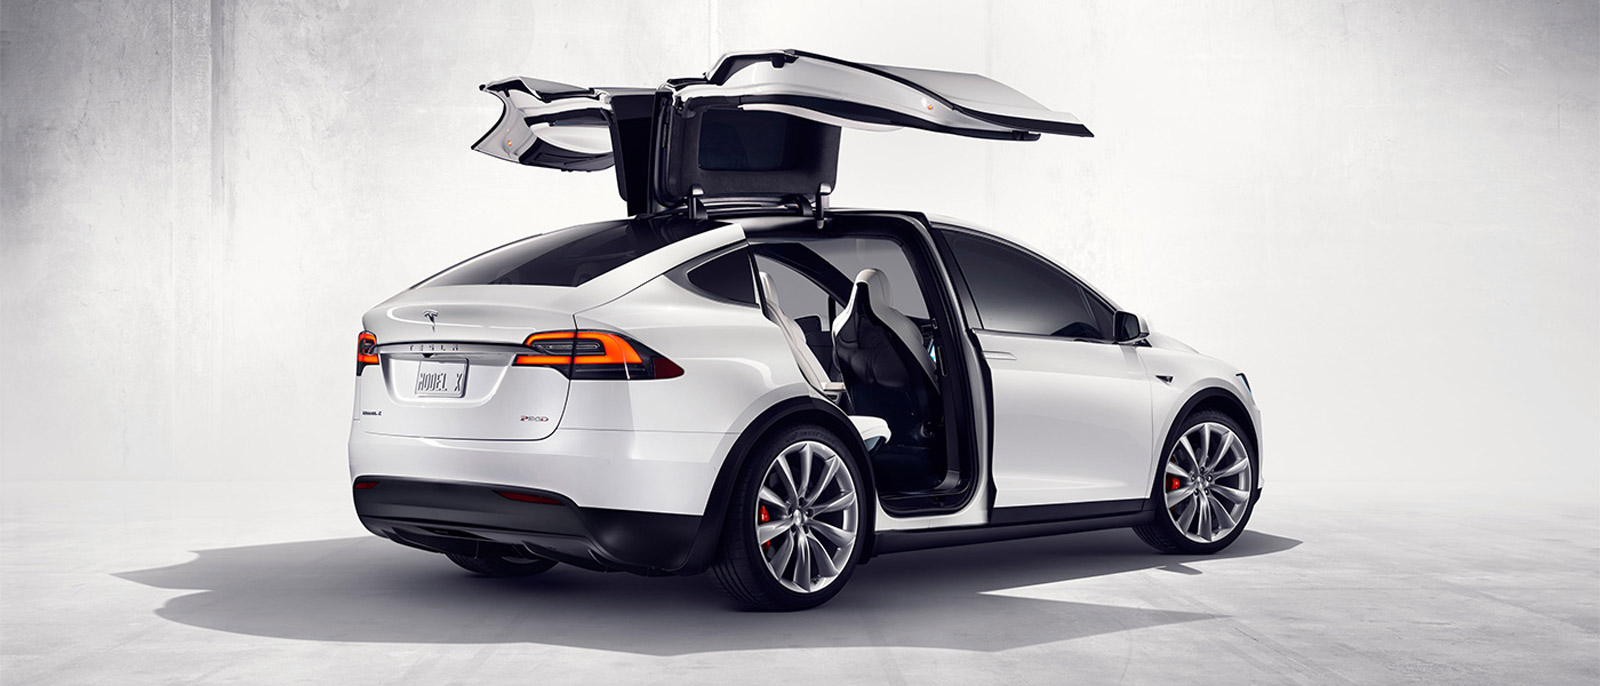 2016 Tesla Model X Epa Ratings Range Now Available